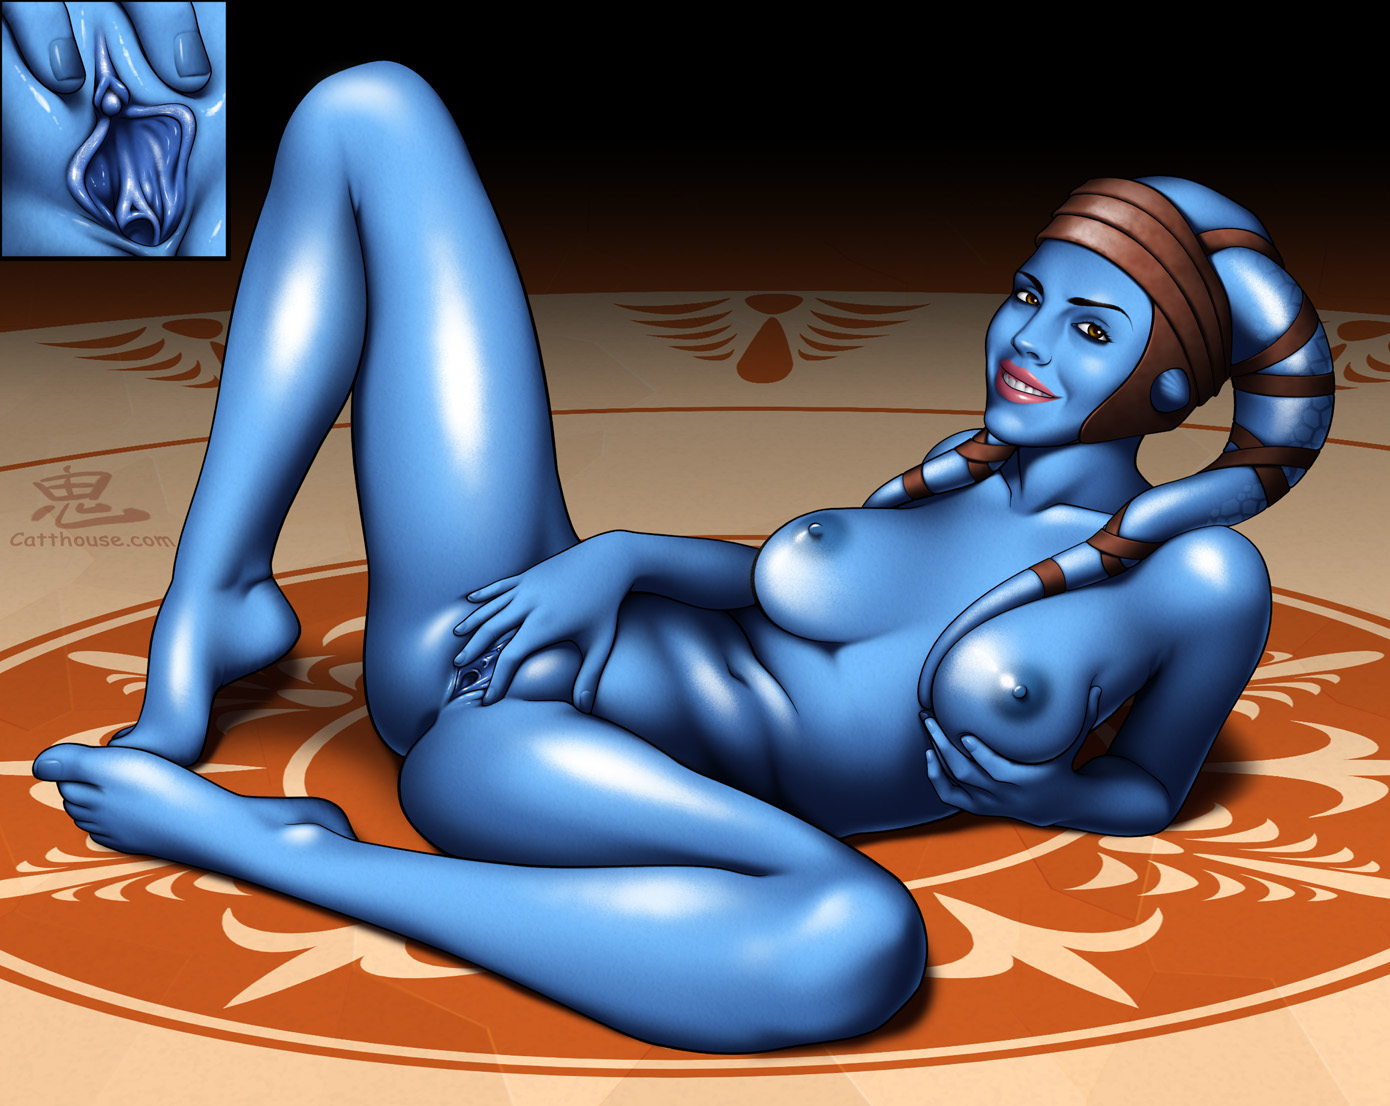 Nude twilek girls xxx women